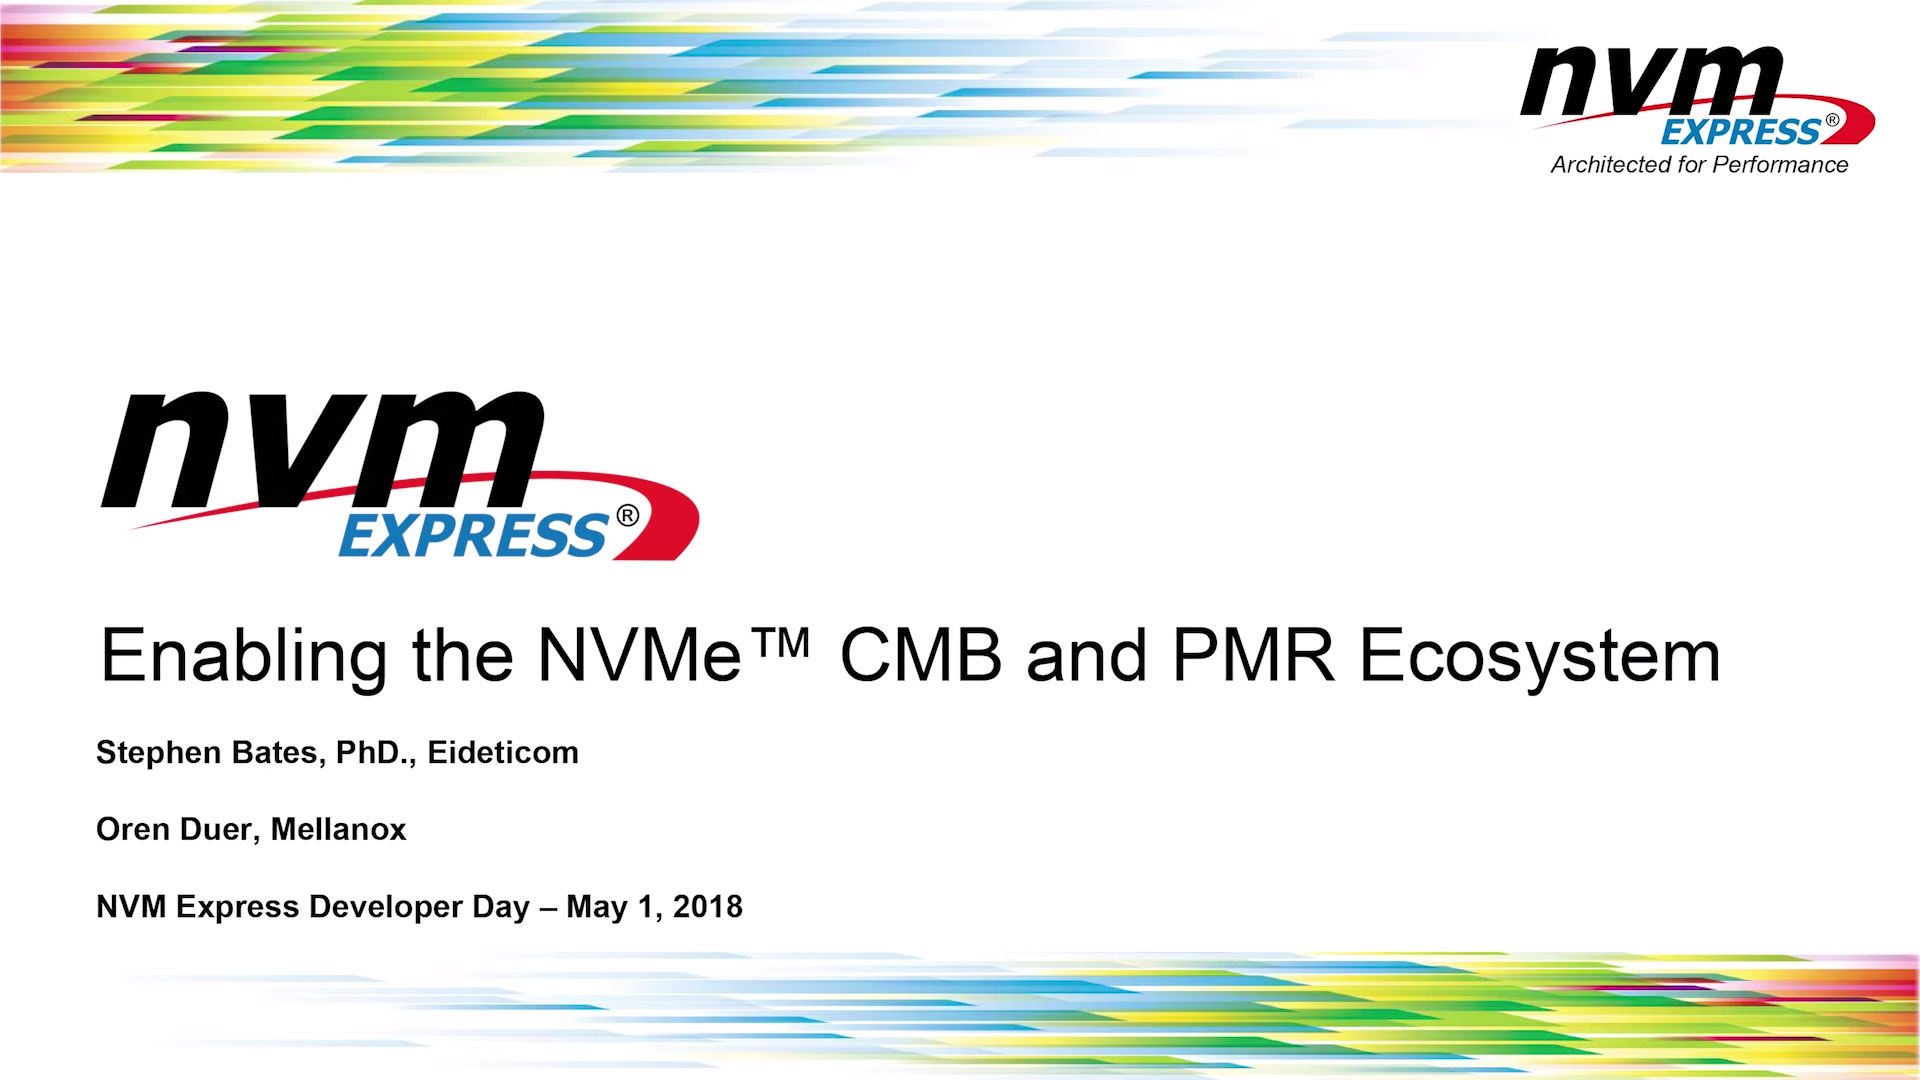 Enabling the NVMe CMB and PMR Ecosystem